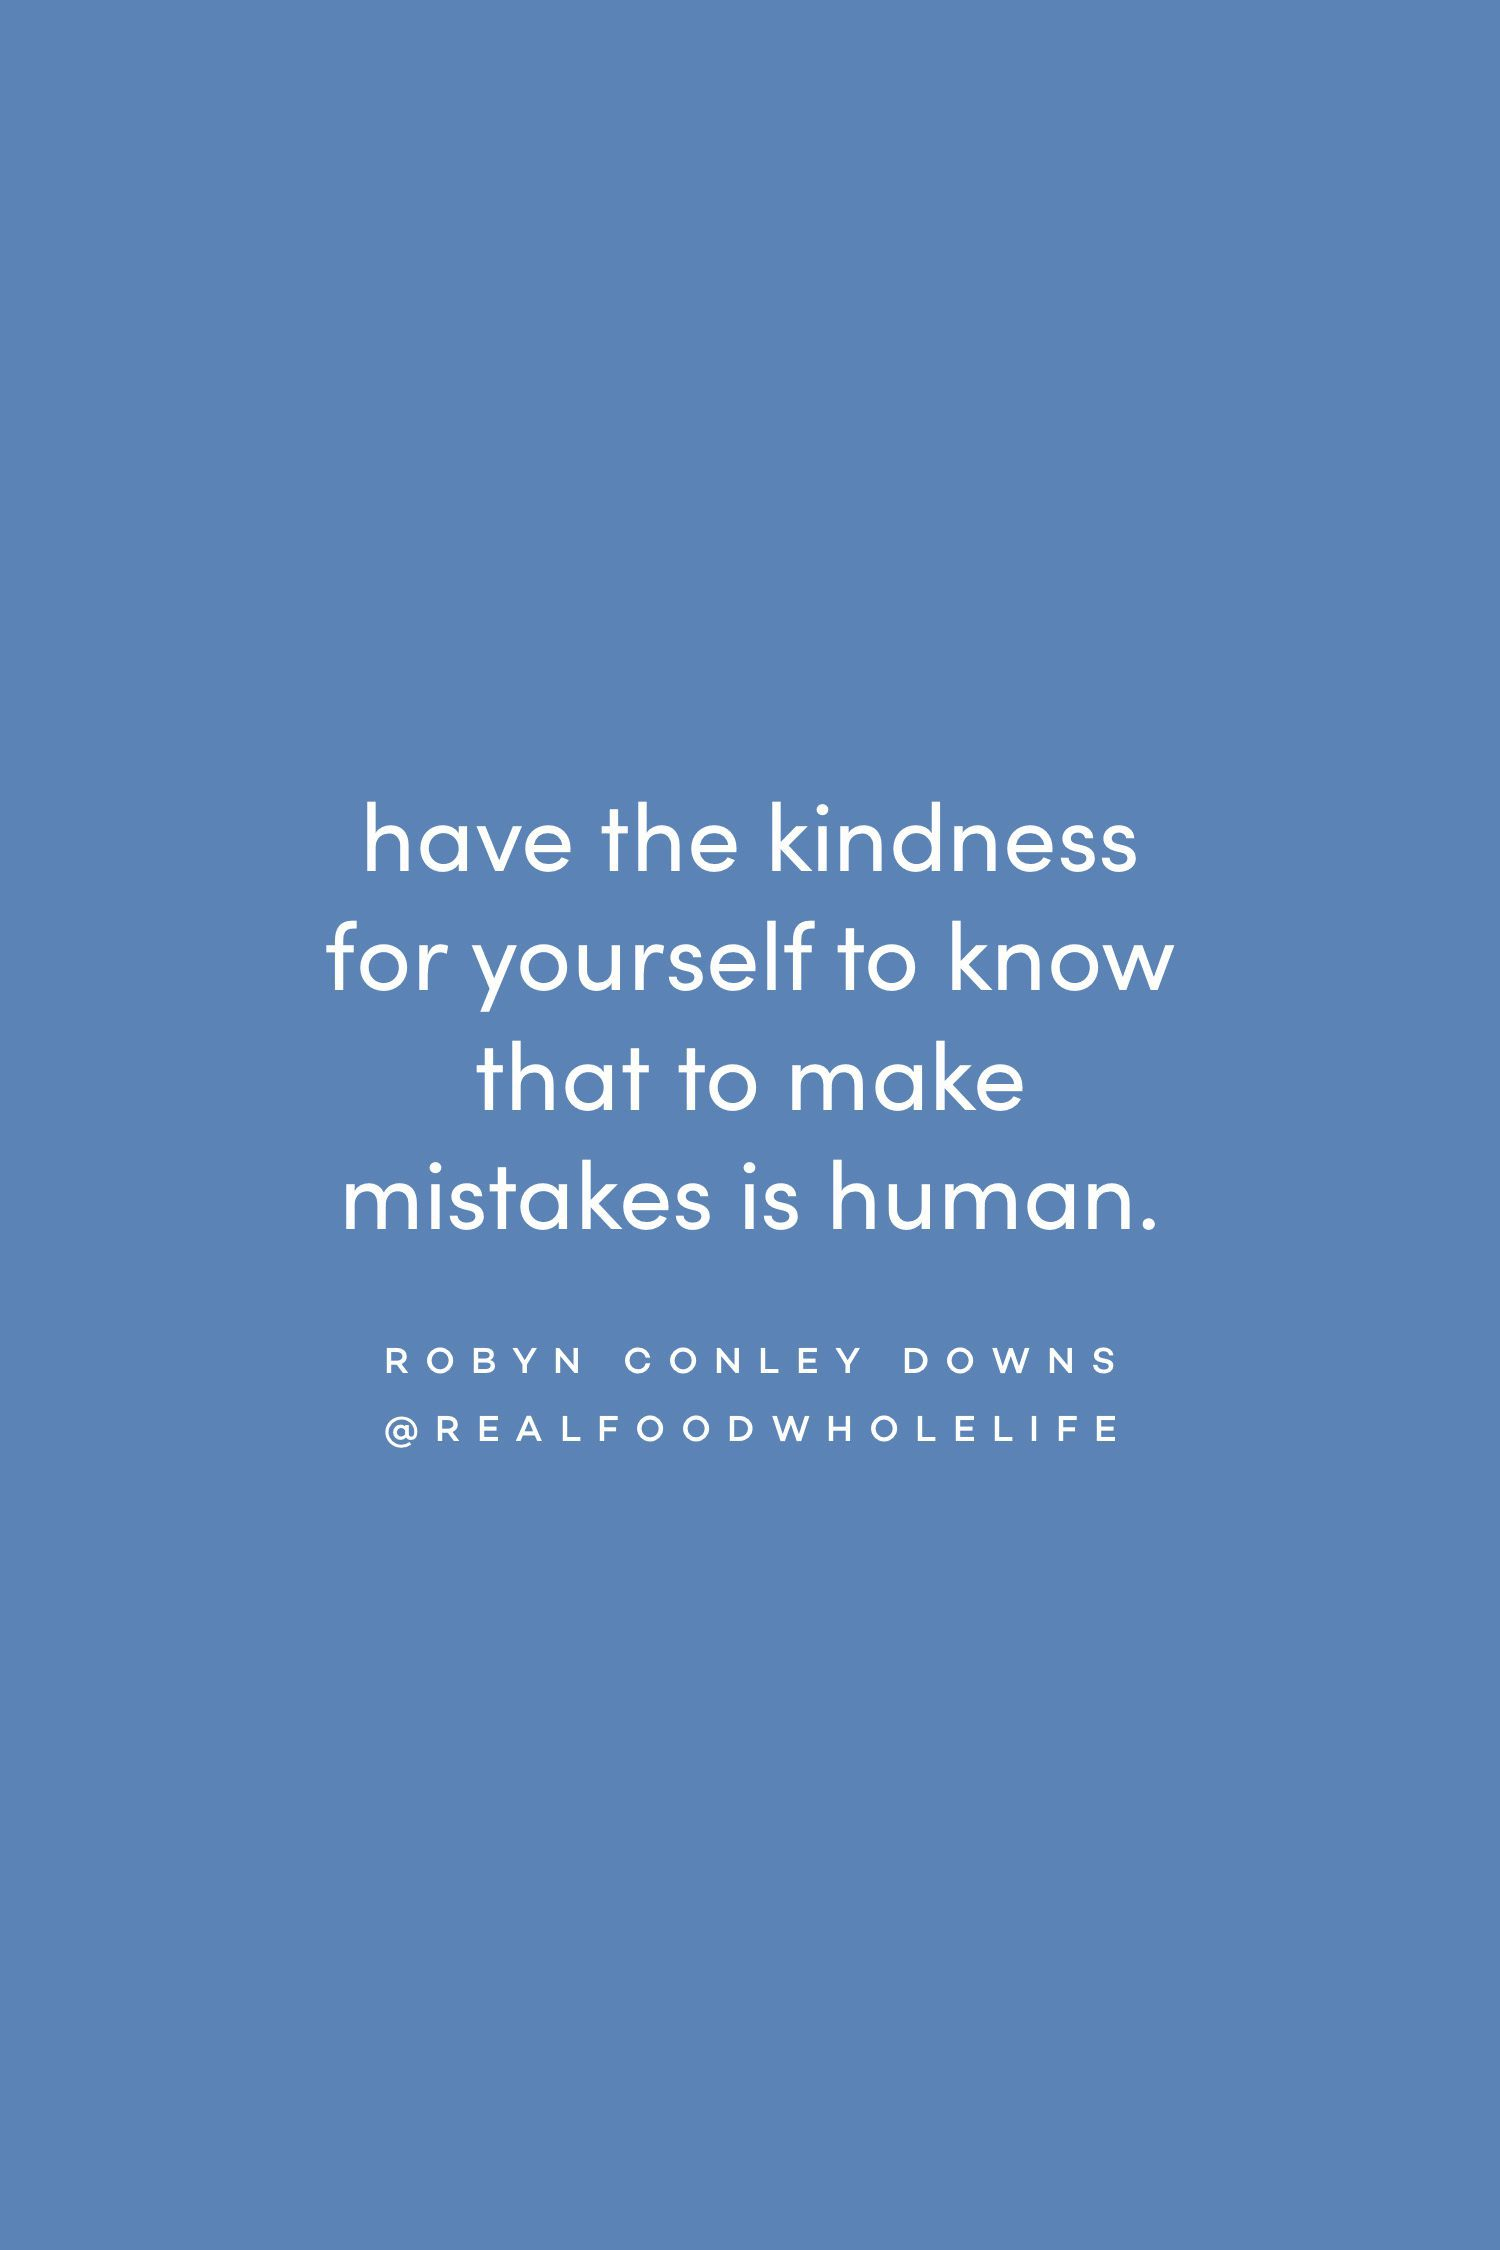 Quote on having kindness for yourself by Robyn Conley Downs on the Feel Good Effect Podcast #realfoodwholelife #feelgoodeffectpodcast #motivationalquote #positivityquote #inspirationalquote #wellnessquote #perfectionismquote #realisticquote #healthquote #kindnessquote #selflovequote #selfcompassionquote